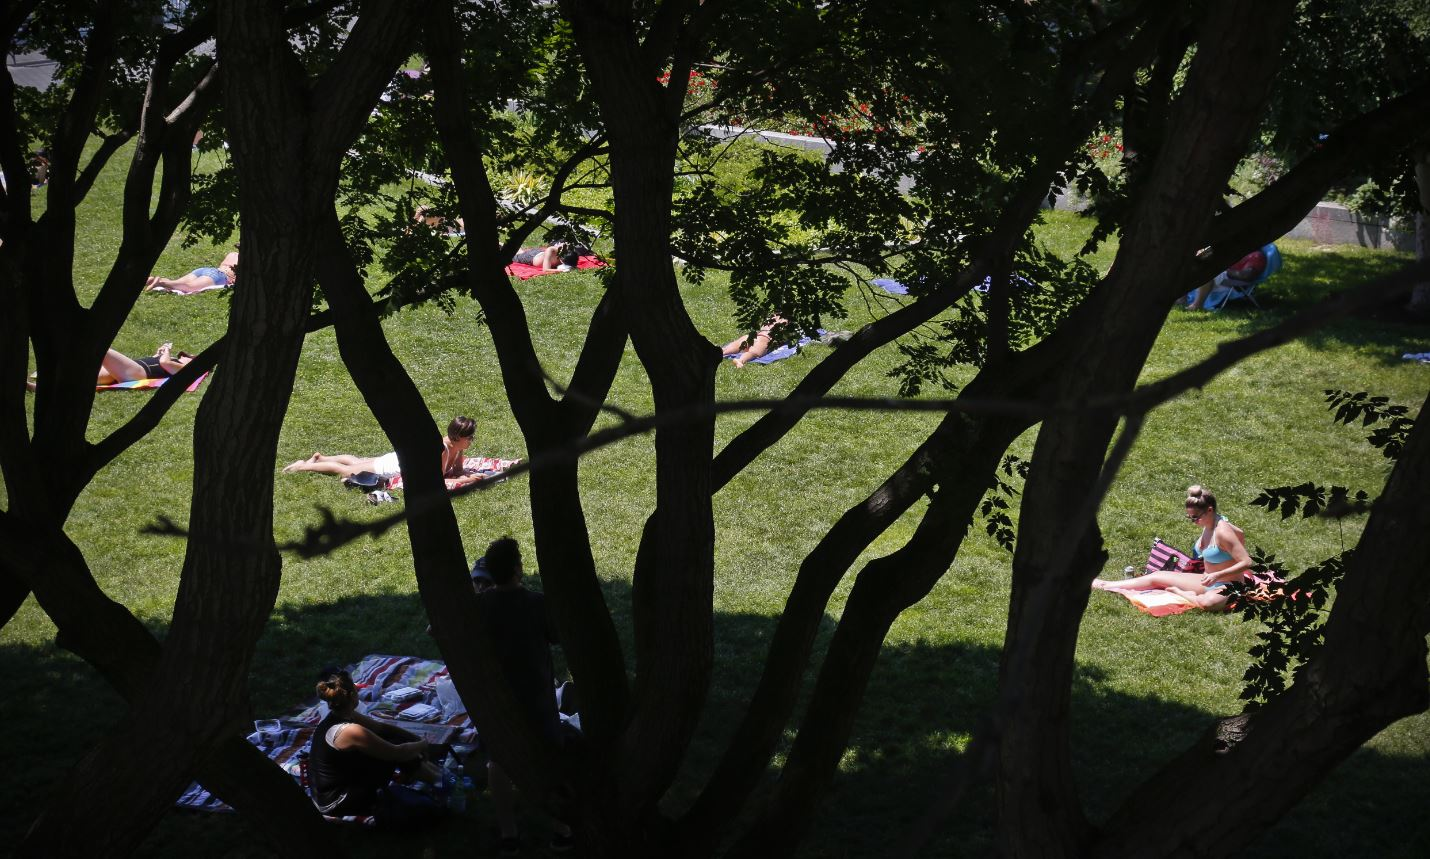 Heat wave approaches DC area as cooler weather flees region